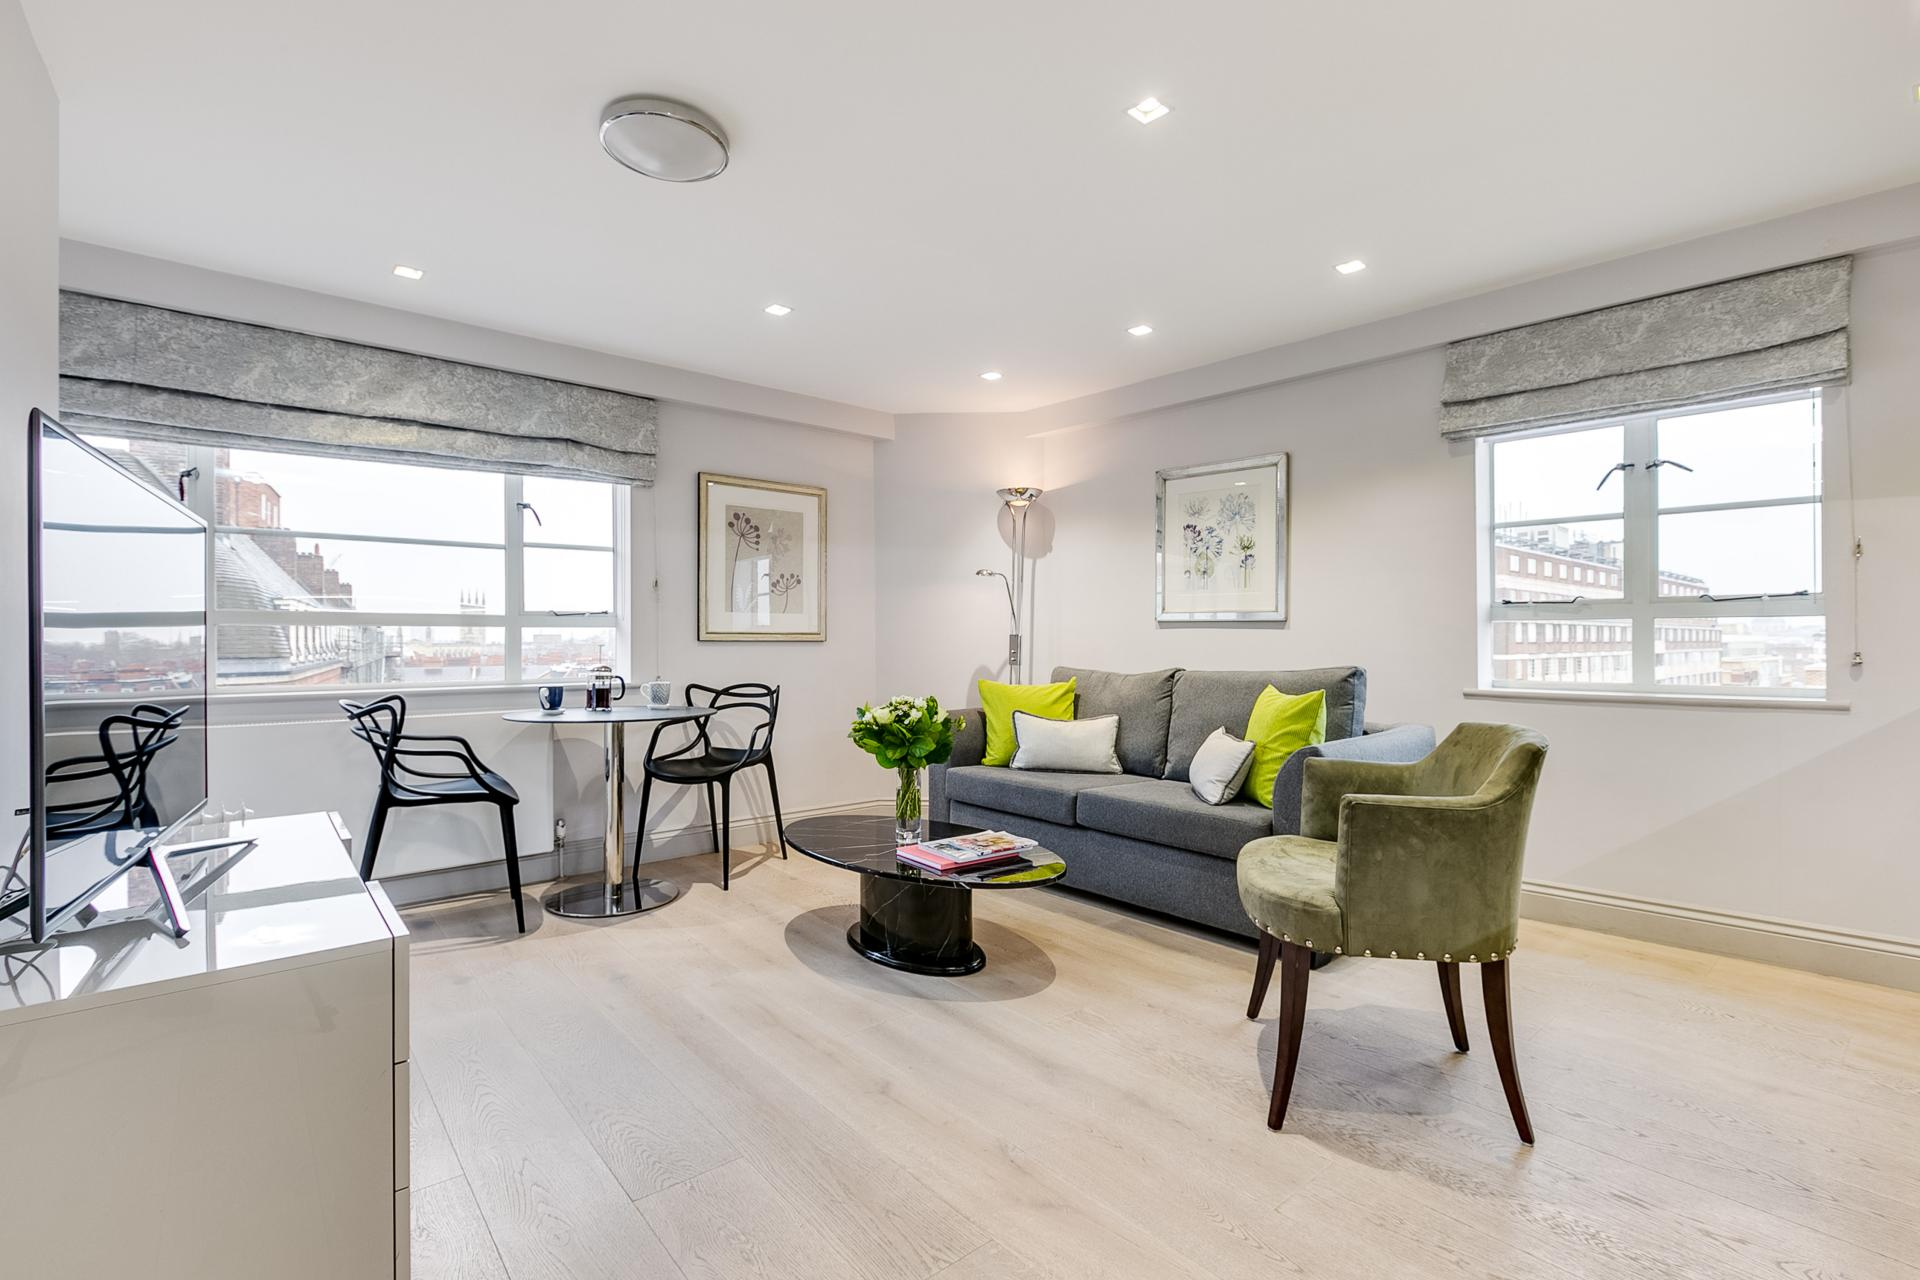 Living room at Nell Gwynn Chelsea Accommodation, Chelsea, London - Citybase Apartments